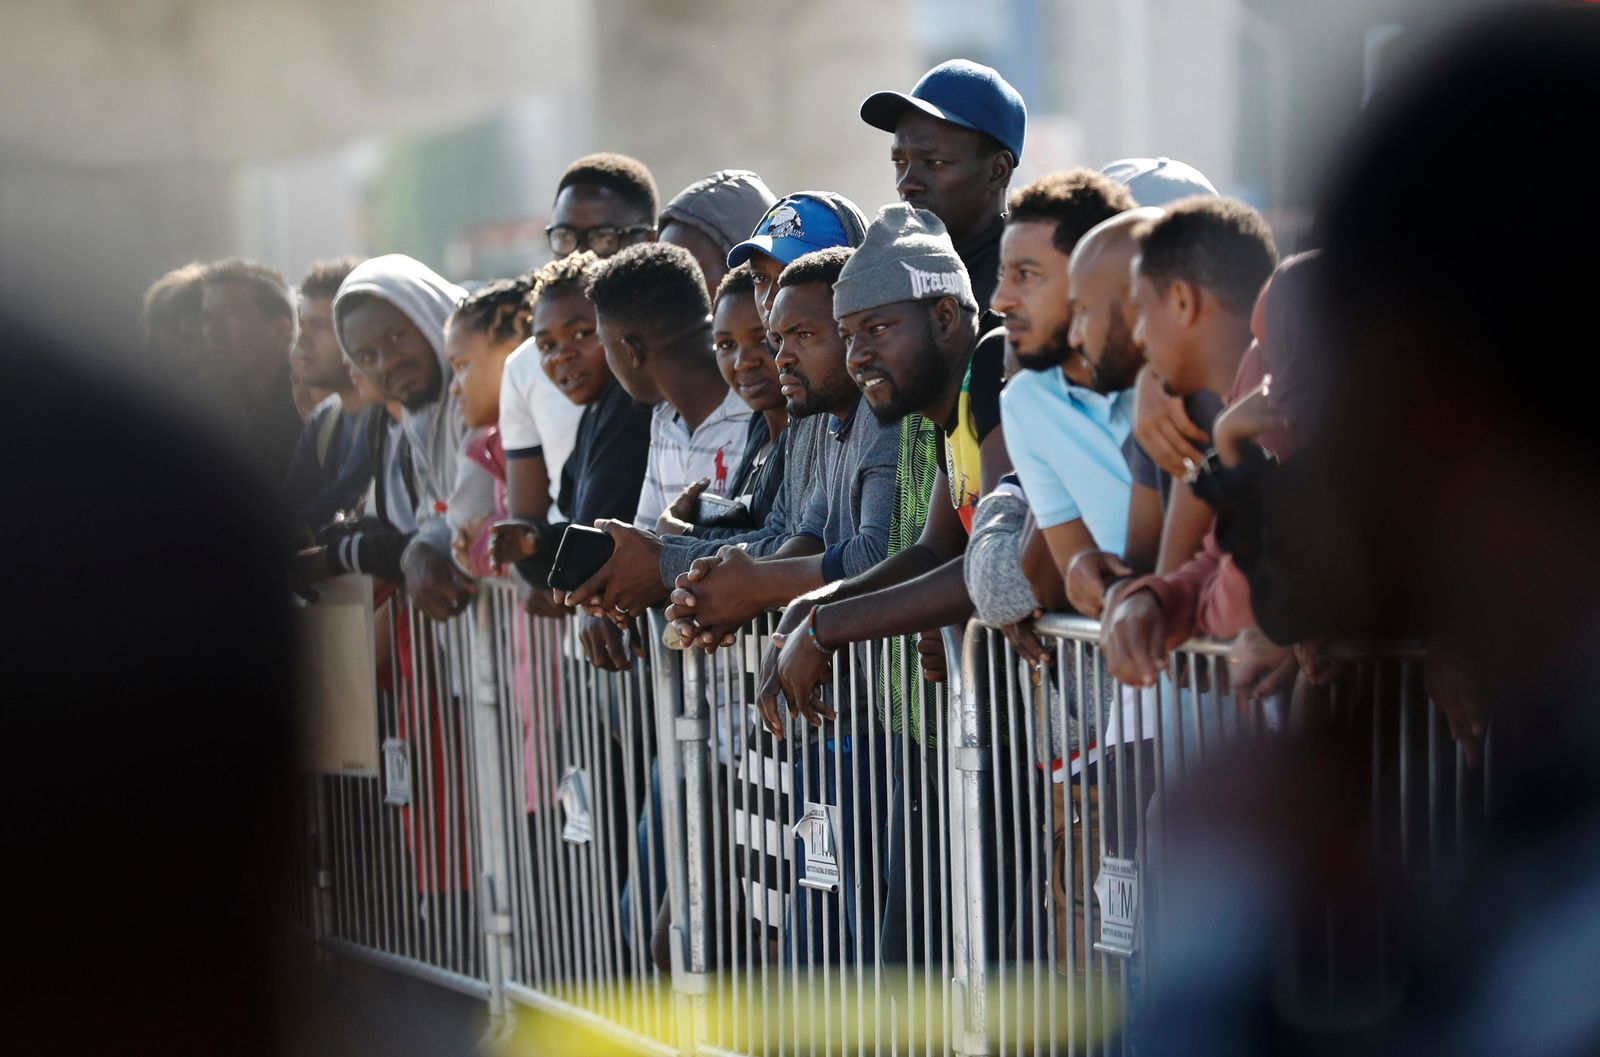 People wait to apply for asylum in the United States along the border Tuesday, July 16, 2019, in Tijuana, Mexico. Dozens of immigrants lined up Tuesday at a major Mexico border crossing, waiting to learn how the Trump administration's plans to end most asylum protections would affect their hopes of taking refuge in the United States. (AP Photo/Gregory Bull)